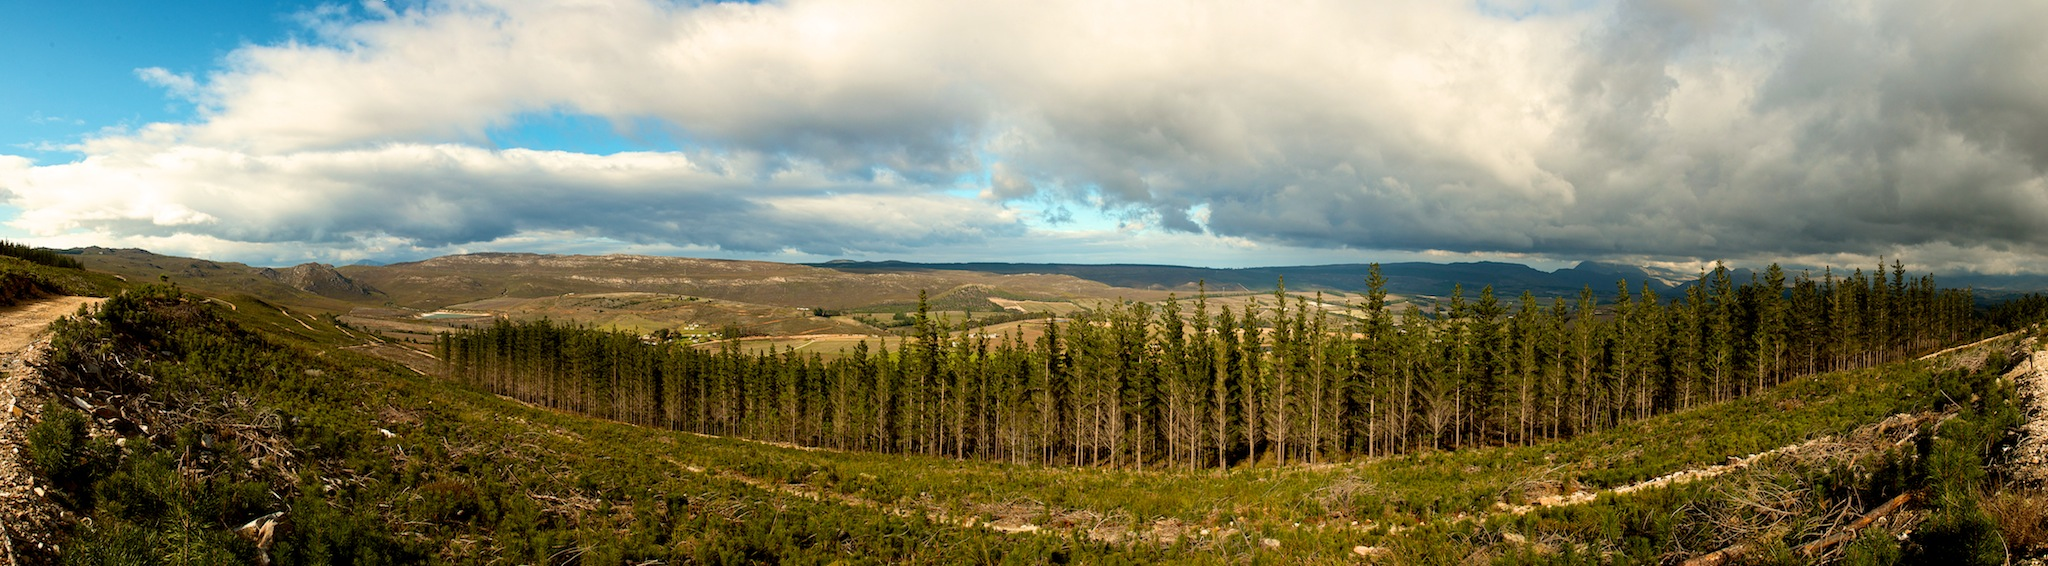 GreenMtnScout_pano1